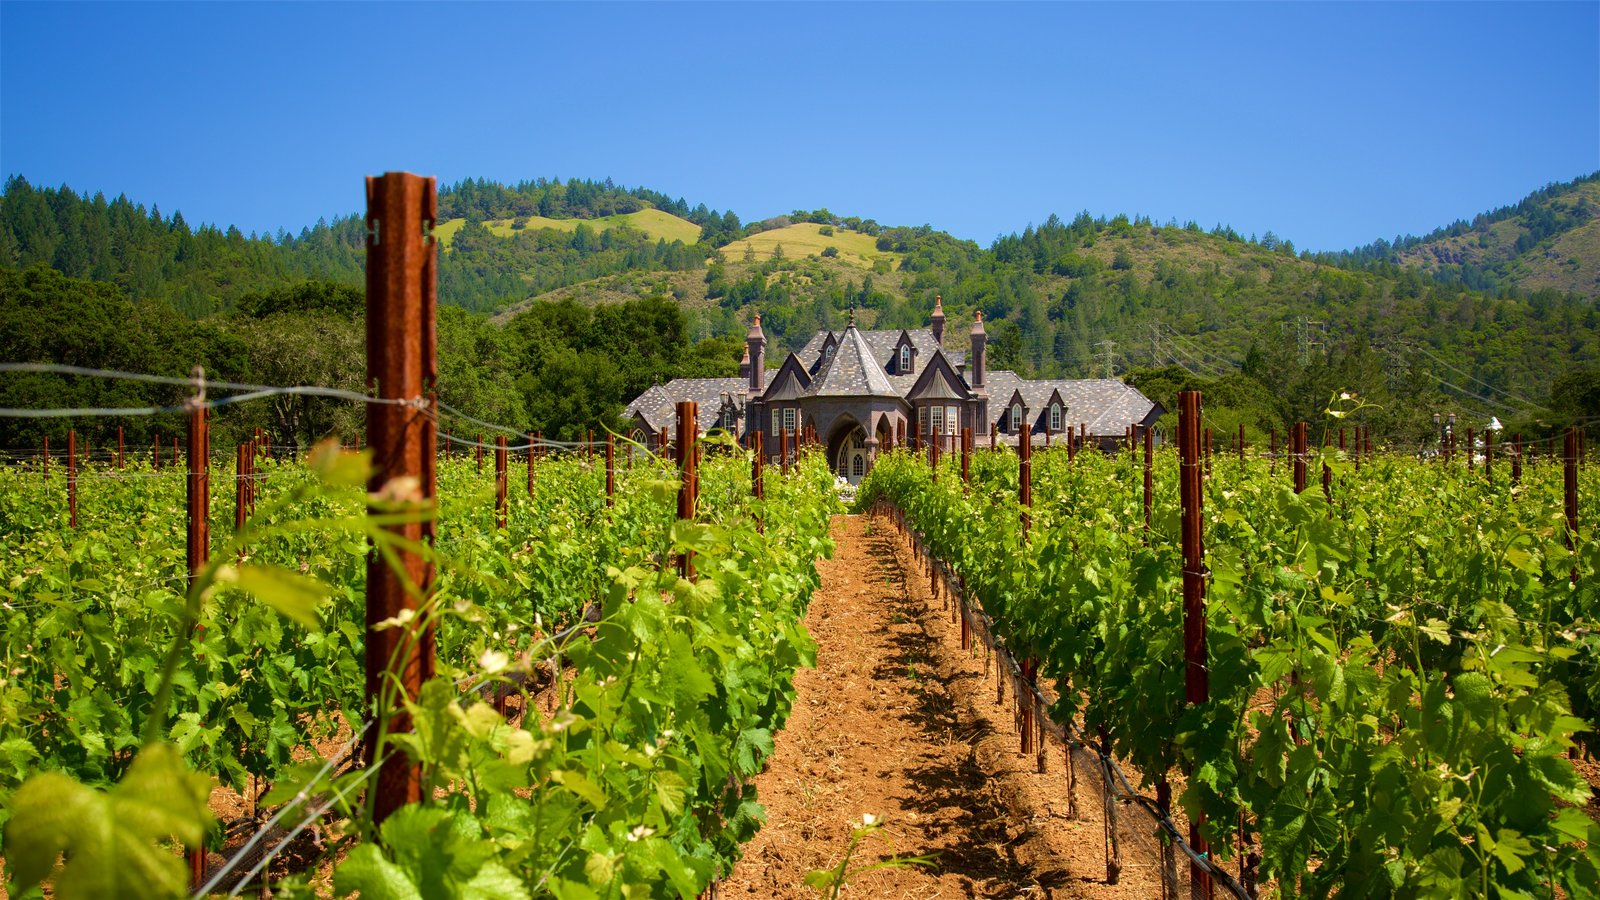 Ledson Winery and Vineyards featuring farmland, tranquil scenes and heritage elements